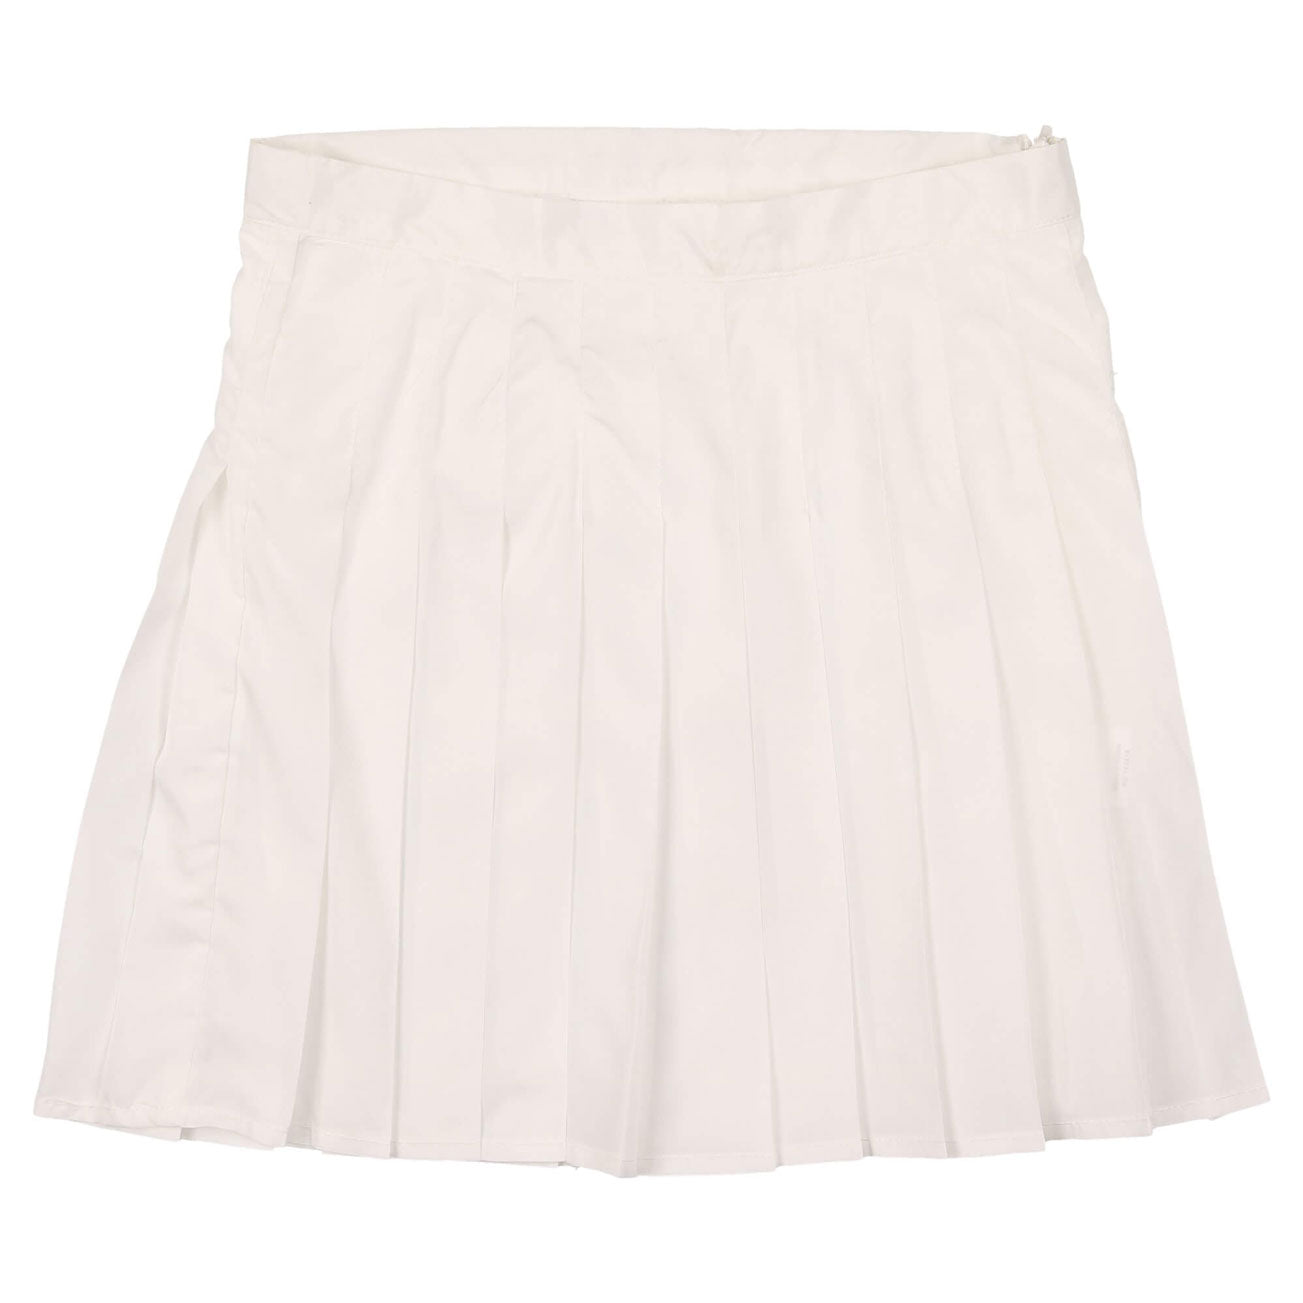 4a5ff2aa6 Coco Blanc White Pleated Skirt | Ladida